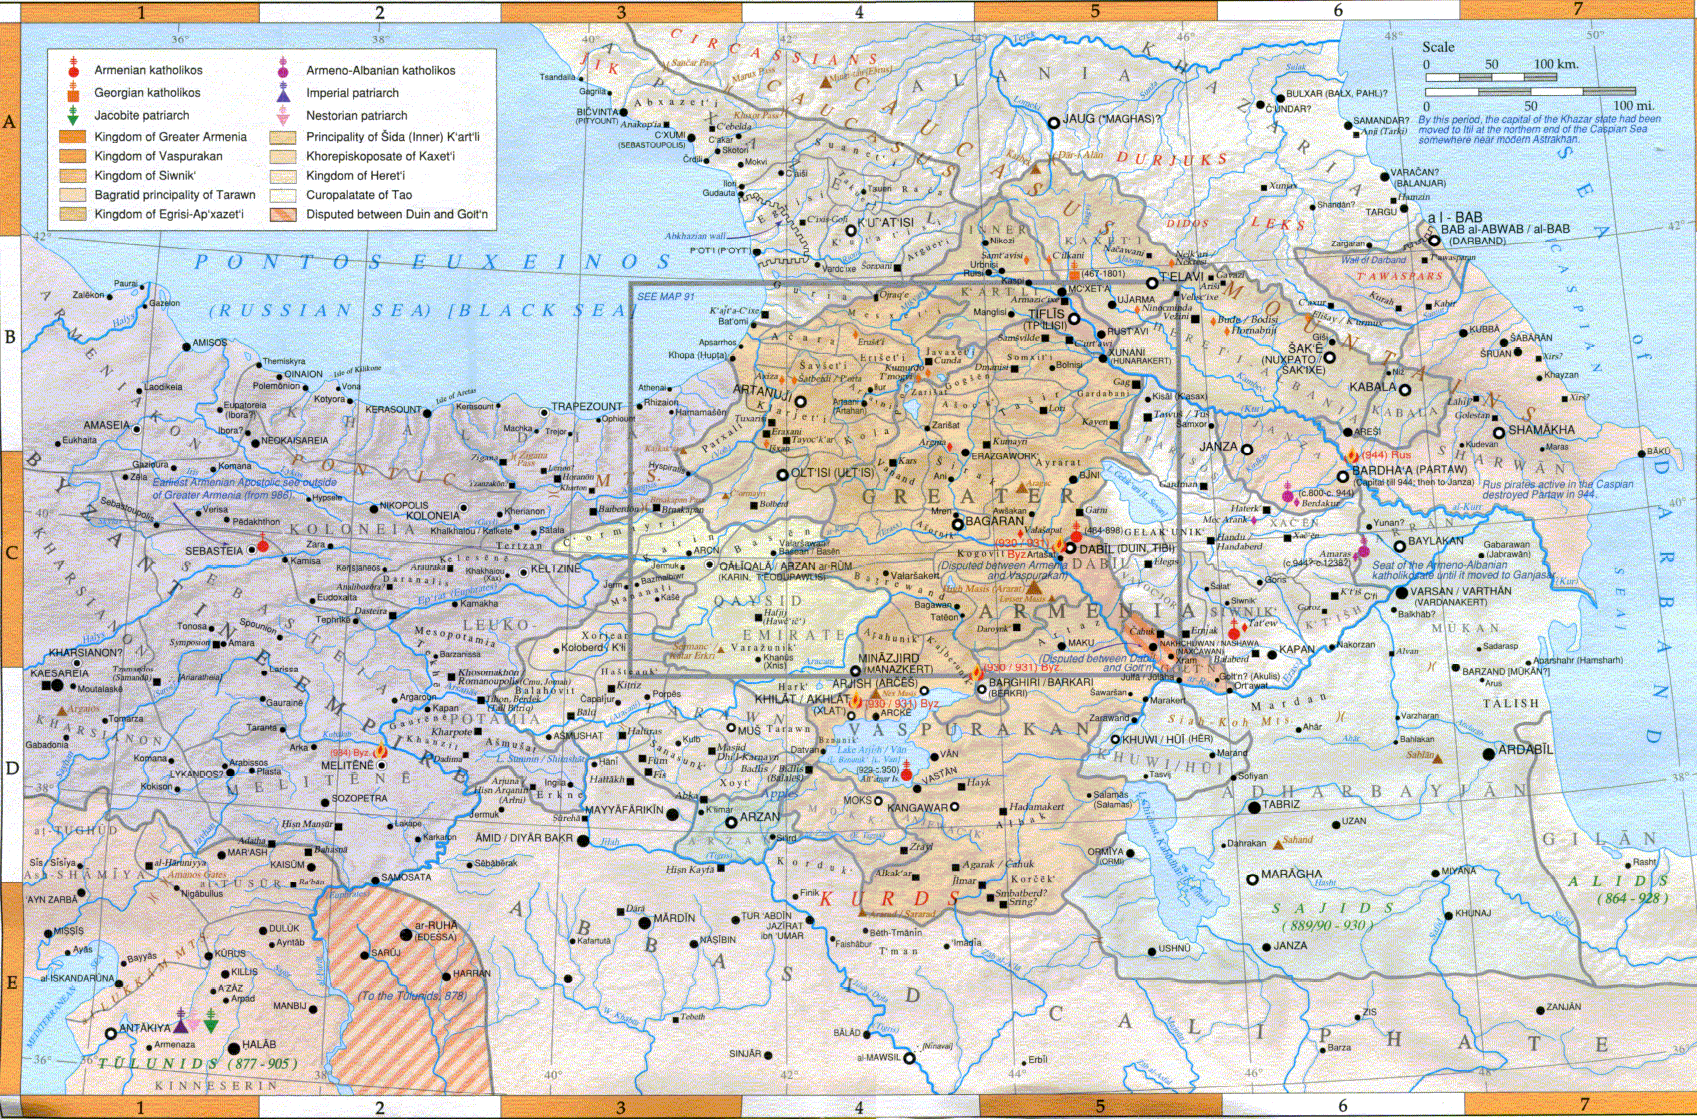 Bagratid Armenia during the 9th-10th centuries map by Robert Hewsen